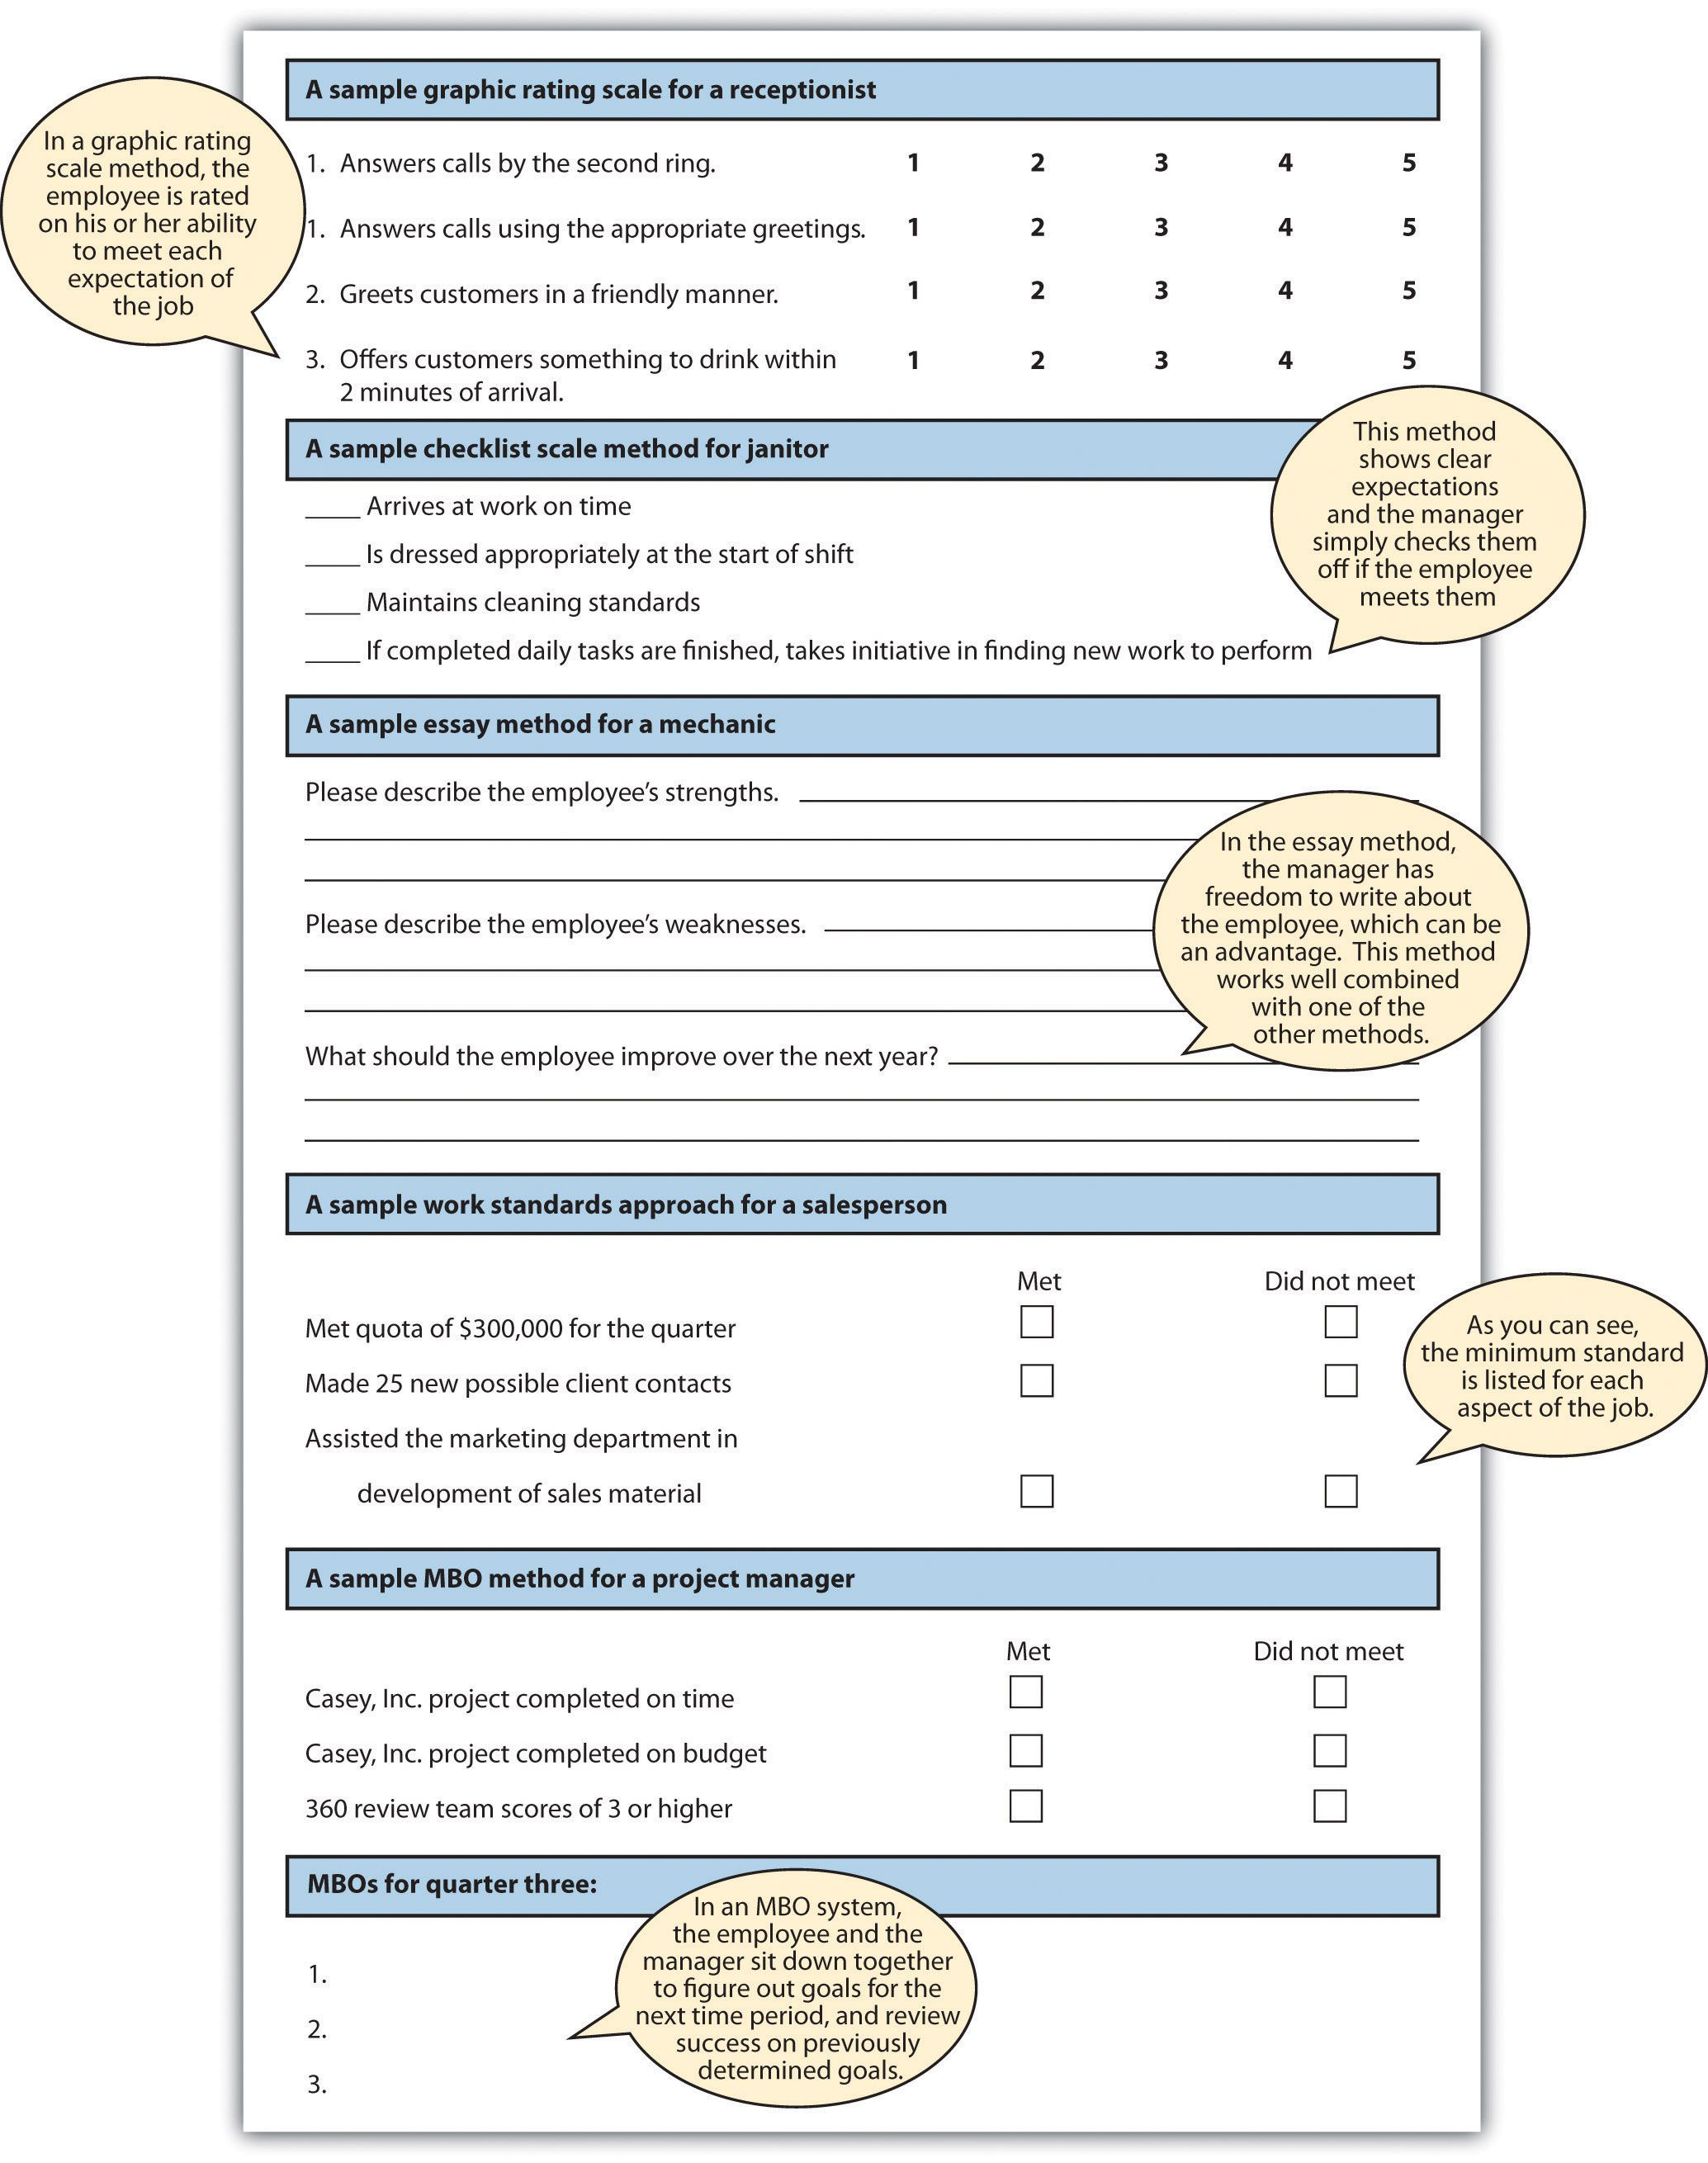 Graphic Rating Scale - Scribd